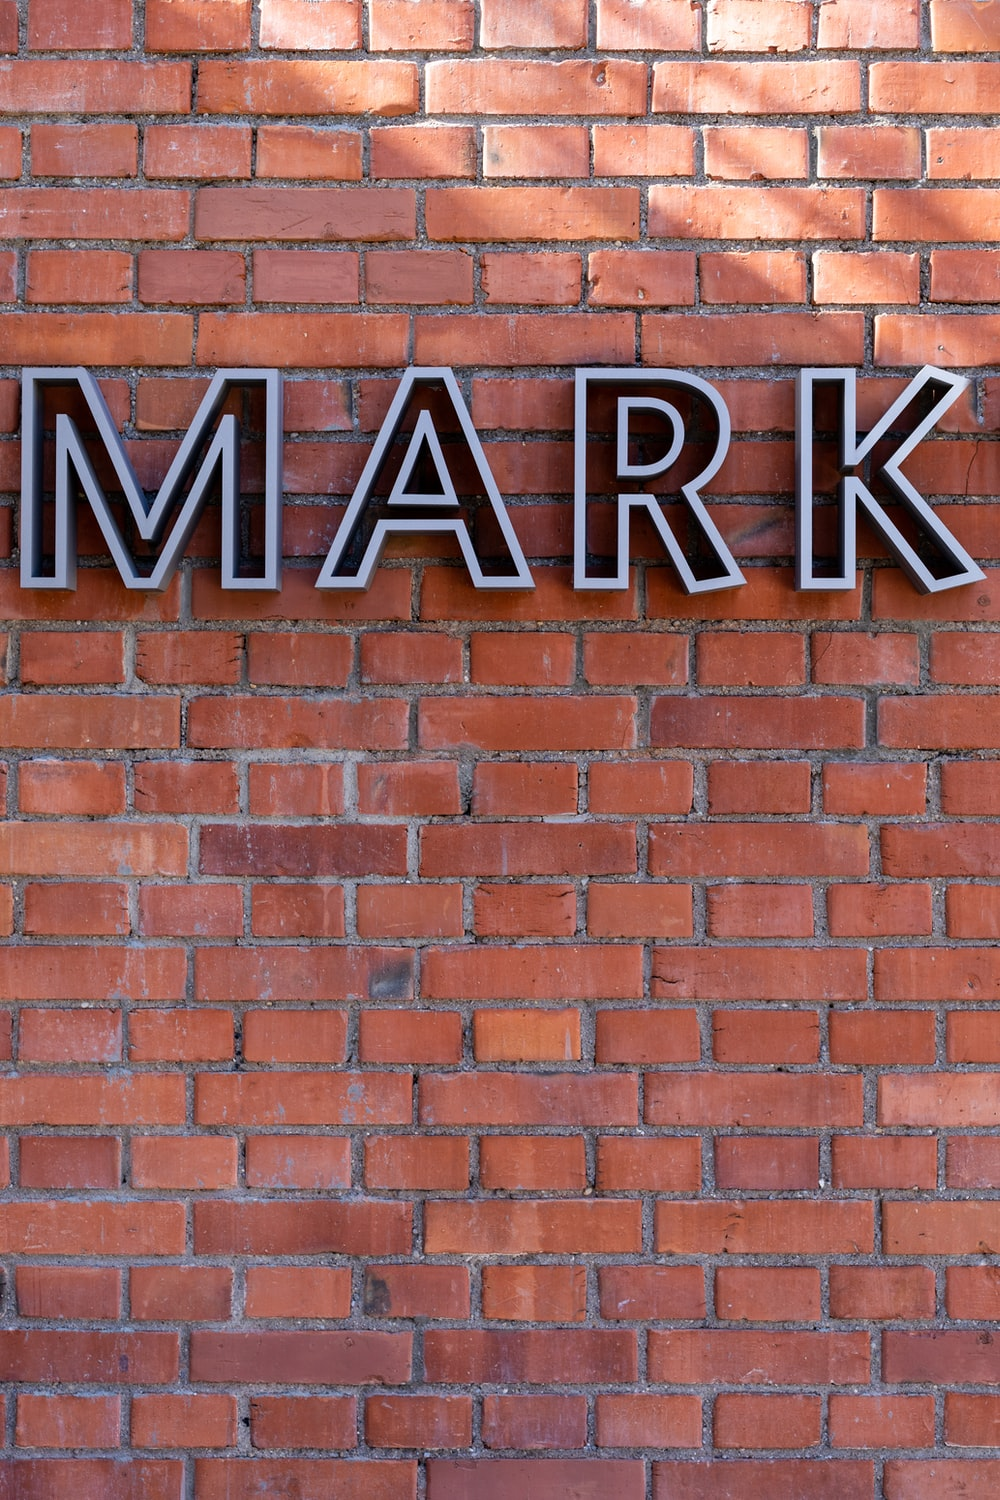 brown brick wall with black and white UNK sign